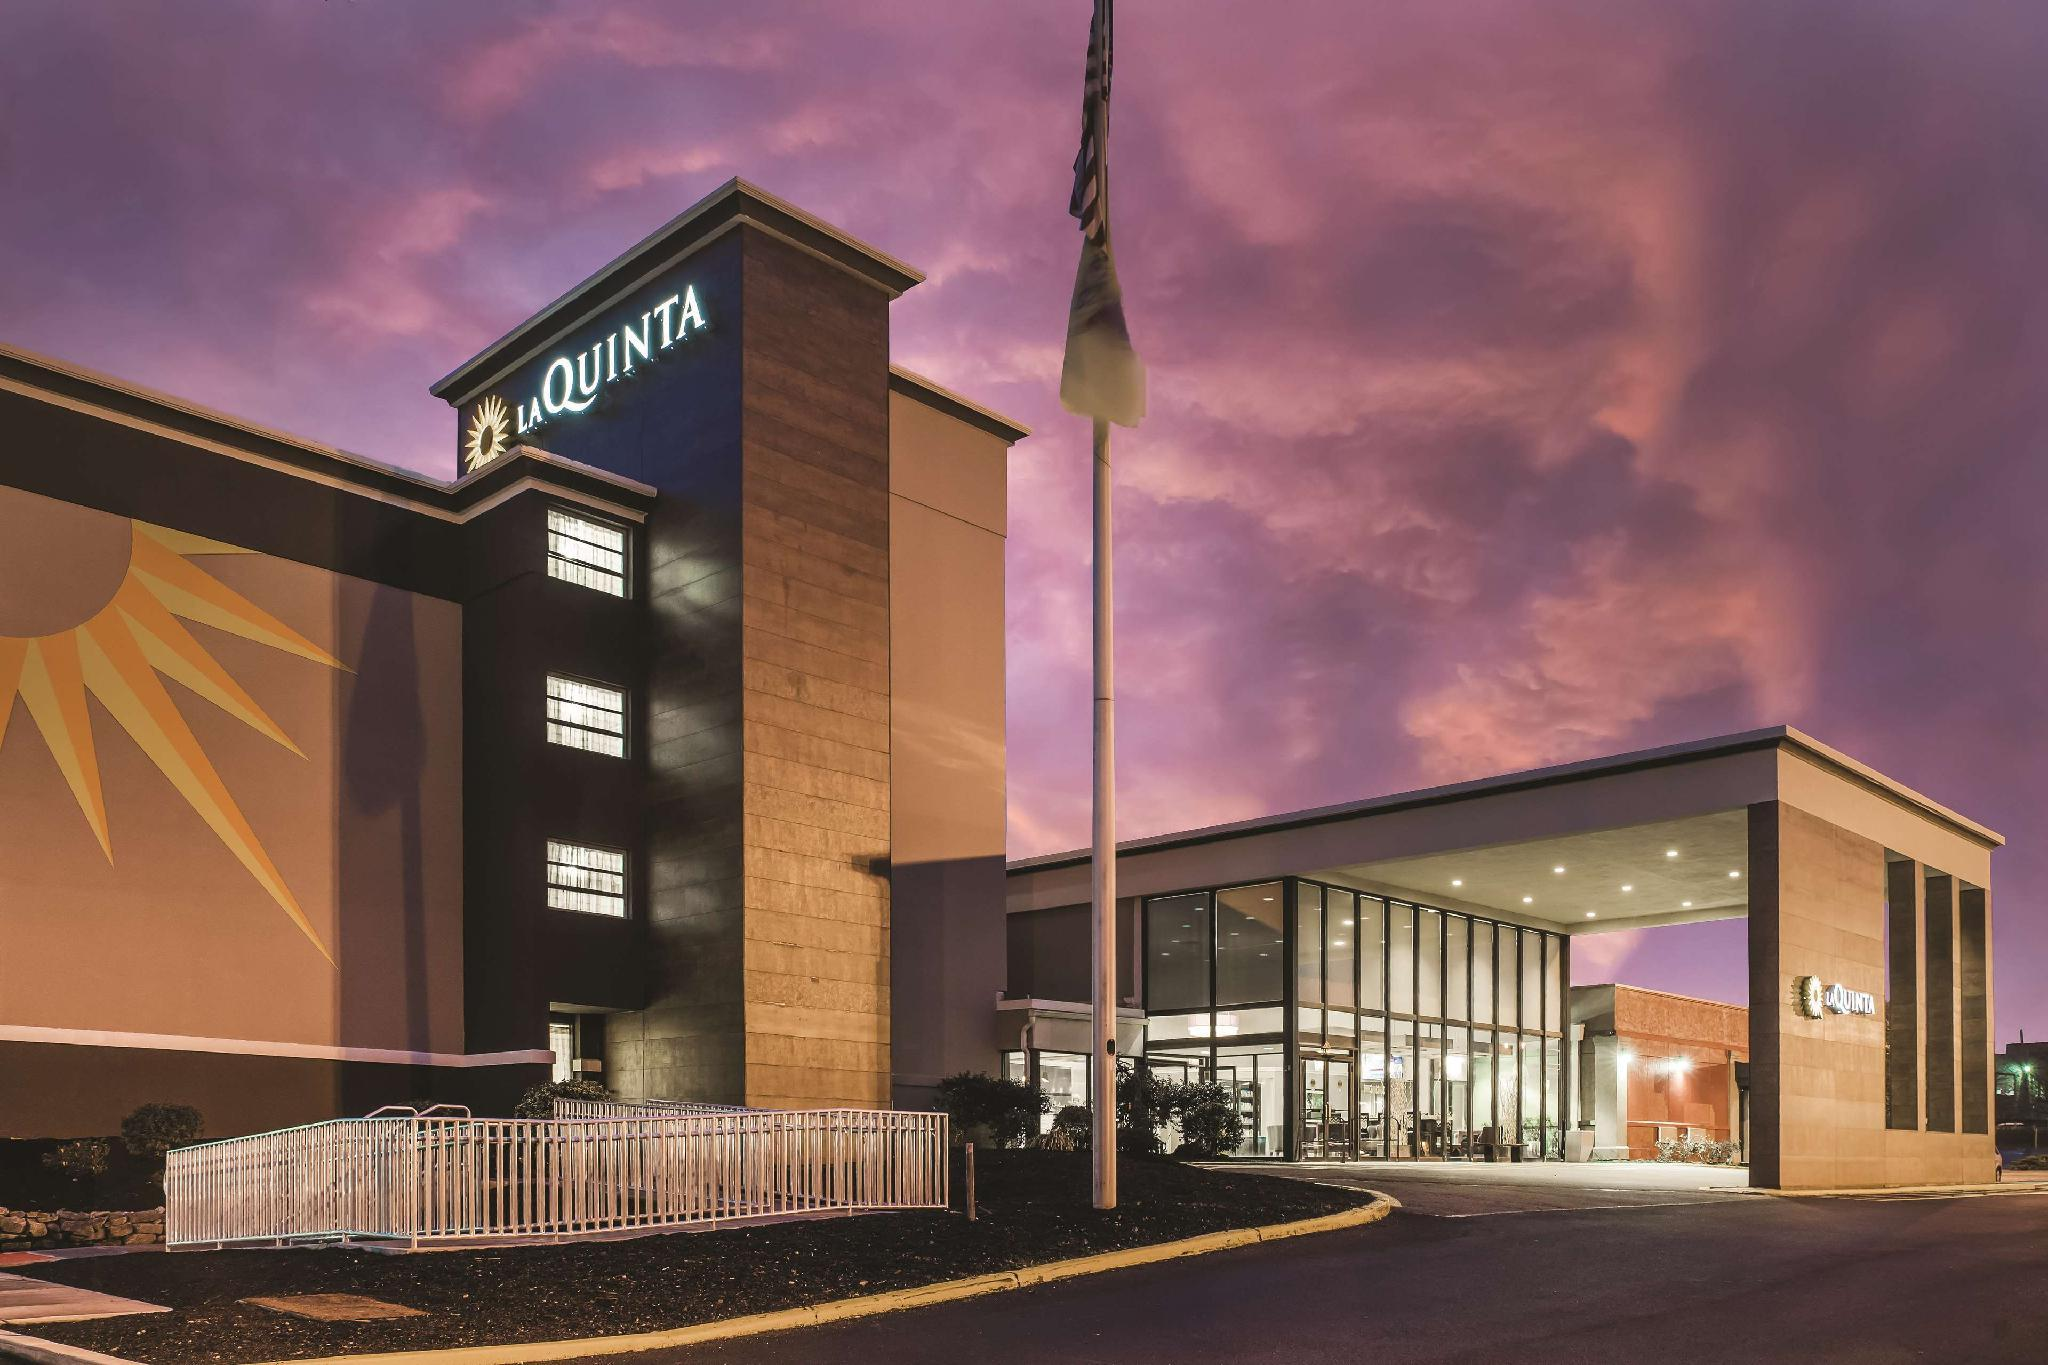 La Quinta Inn And Suites By Wyndham Clifton Rutherford